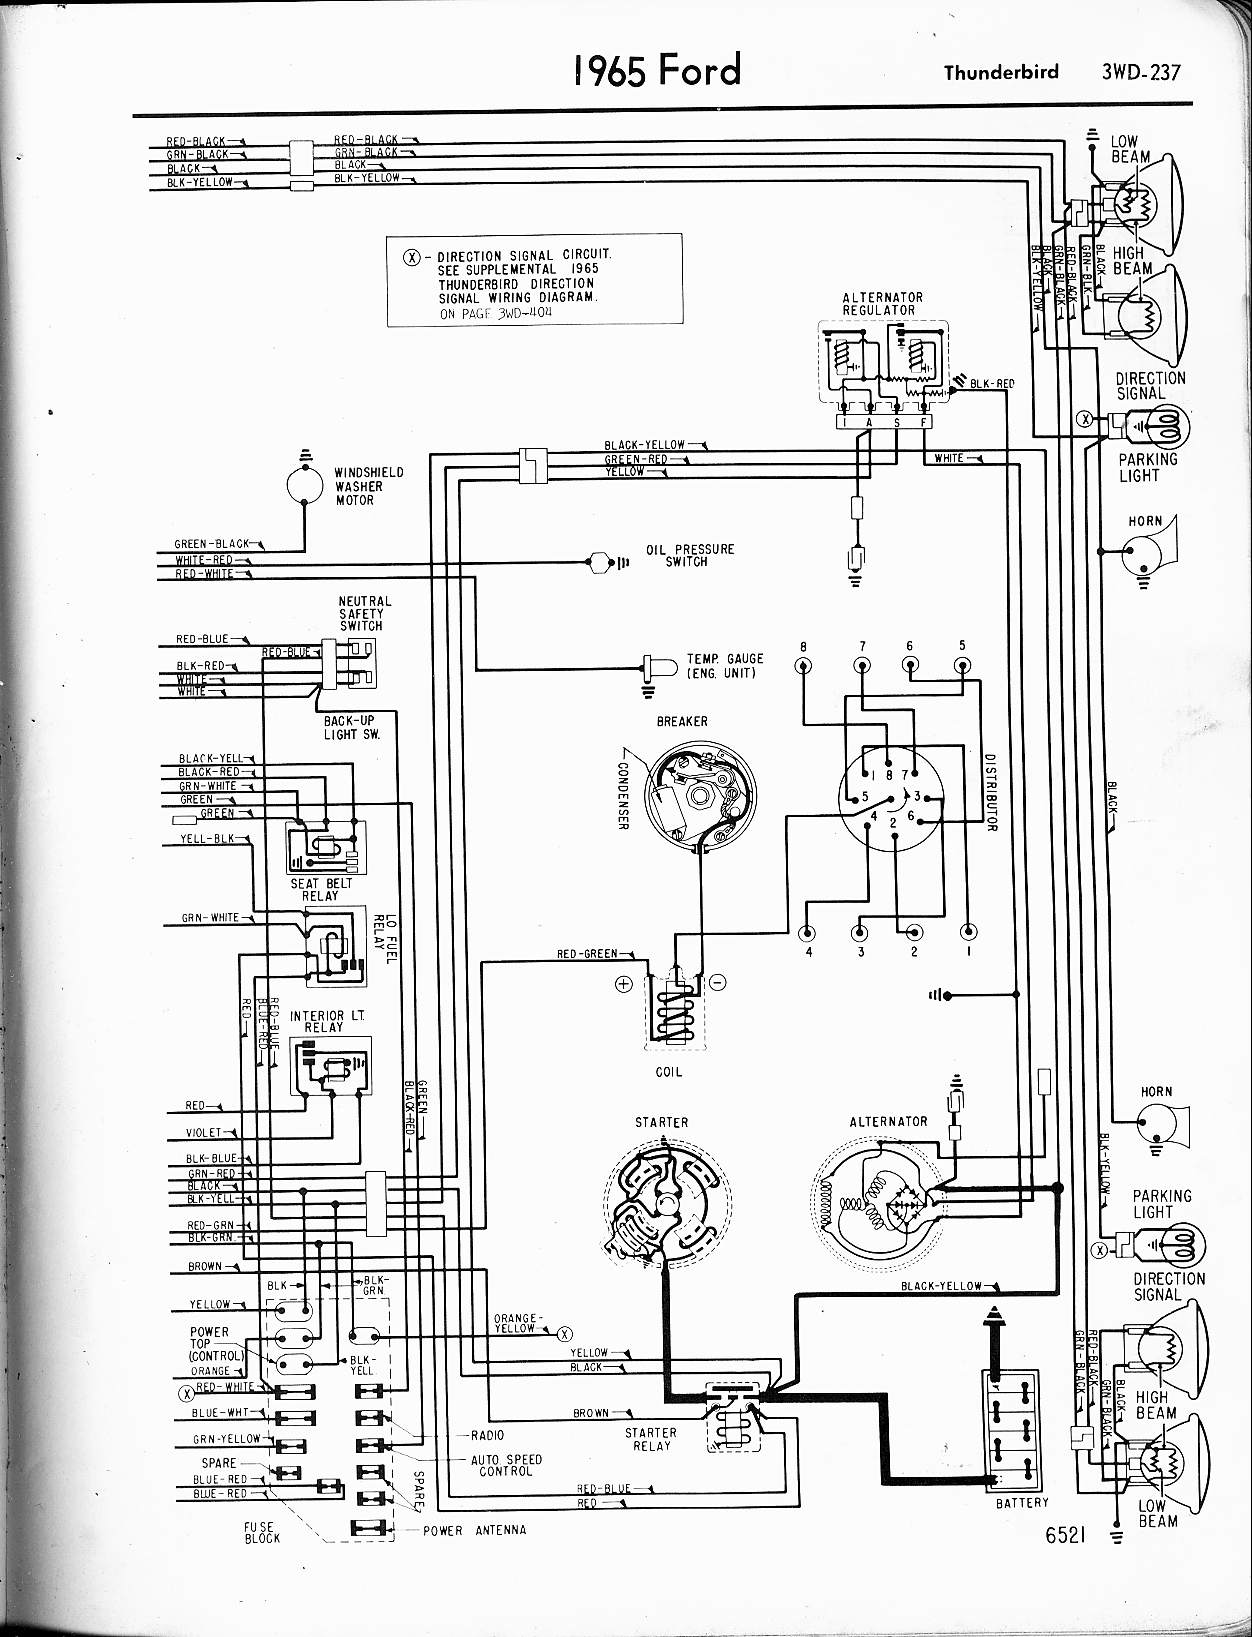 MWire5765 237 57 65 ford wiring diagrams Ford E 350 Wiring Diagrams at fashall.co